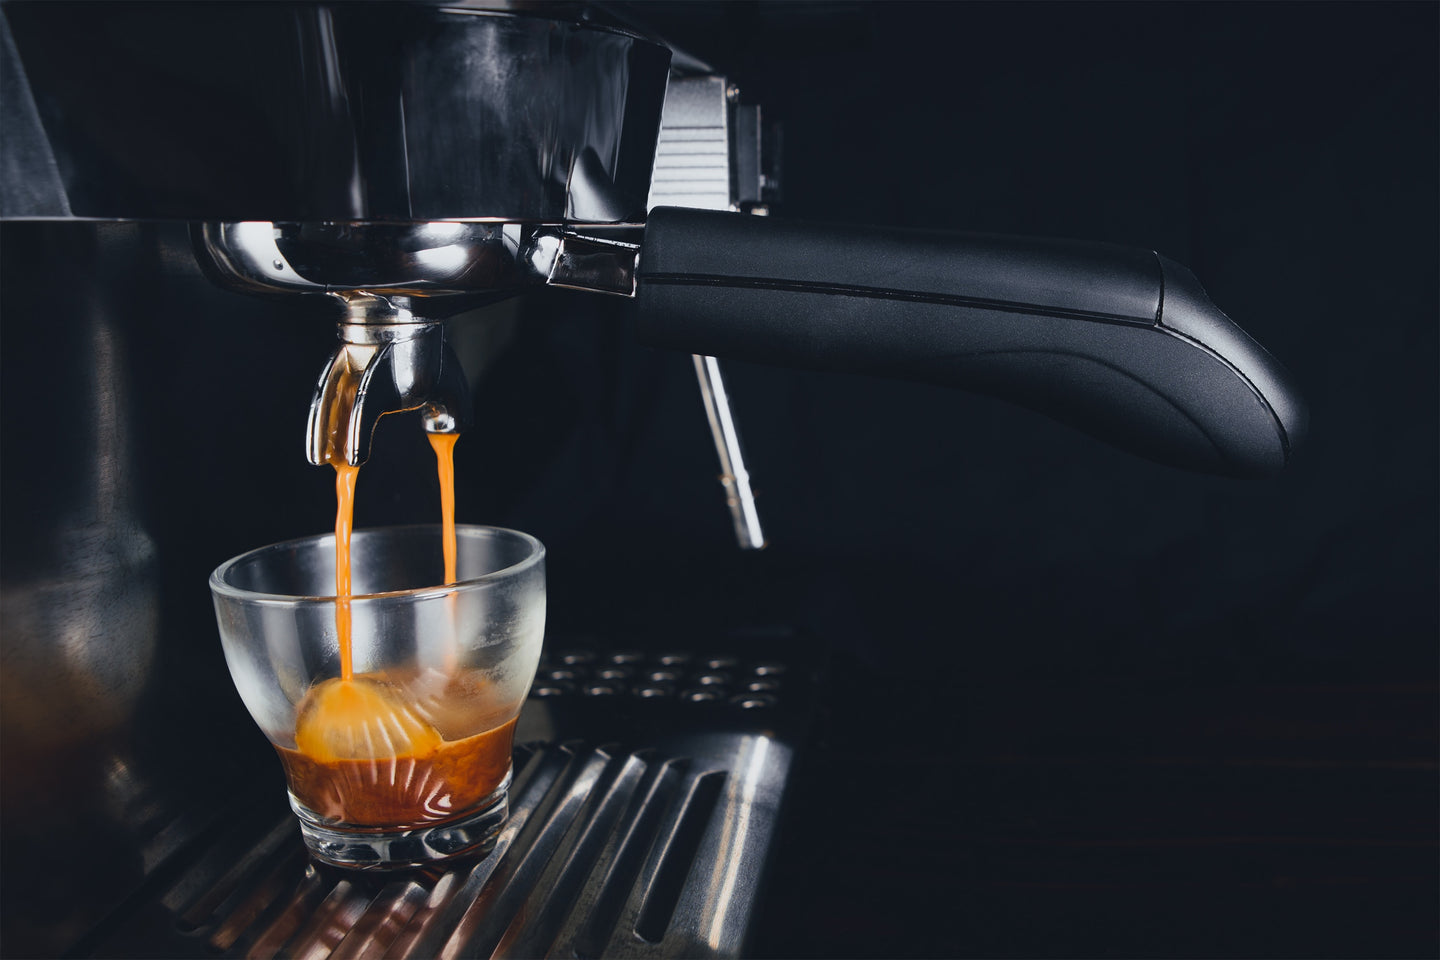 Top Rates Espresso Machines - Clandestine Coffee Co.